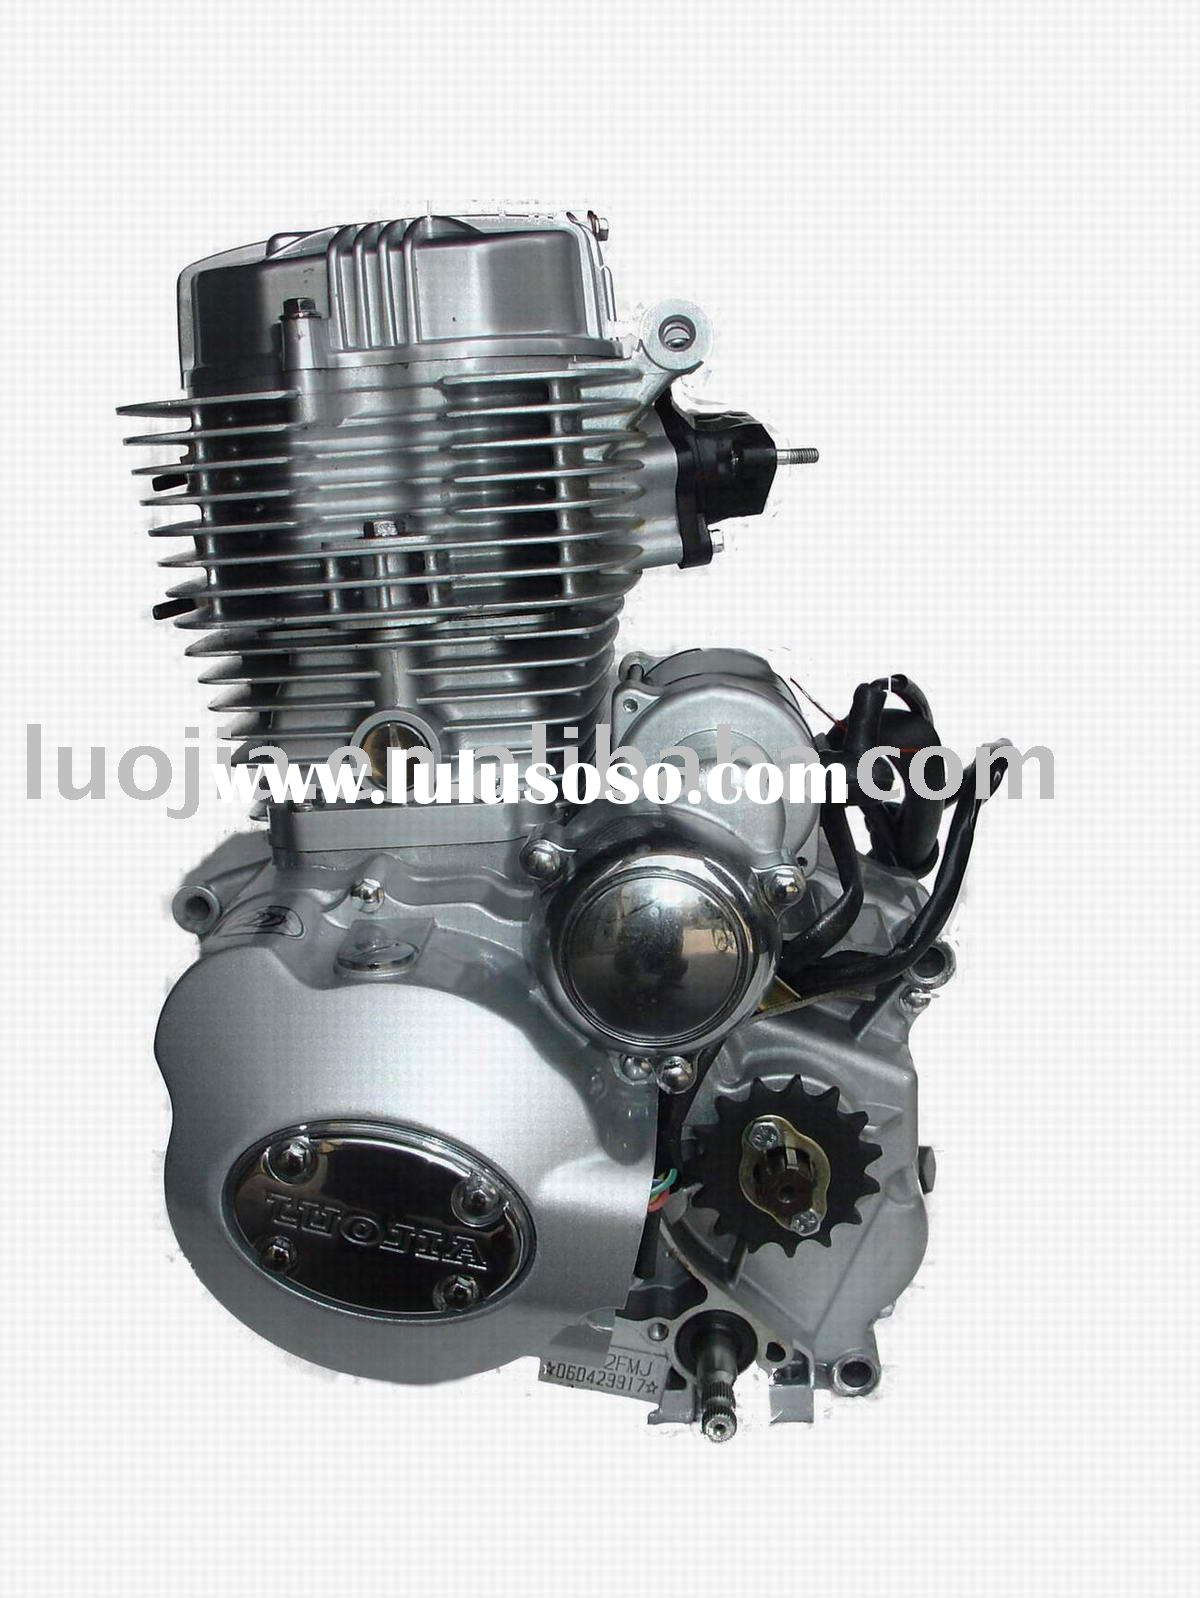 2 Stroke 50cc Atv For Sale Price Manufacturersupplier 2504574 Chinese Wiring Diagram 125cc Cg125 Vertical 4 Engine